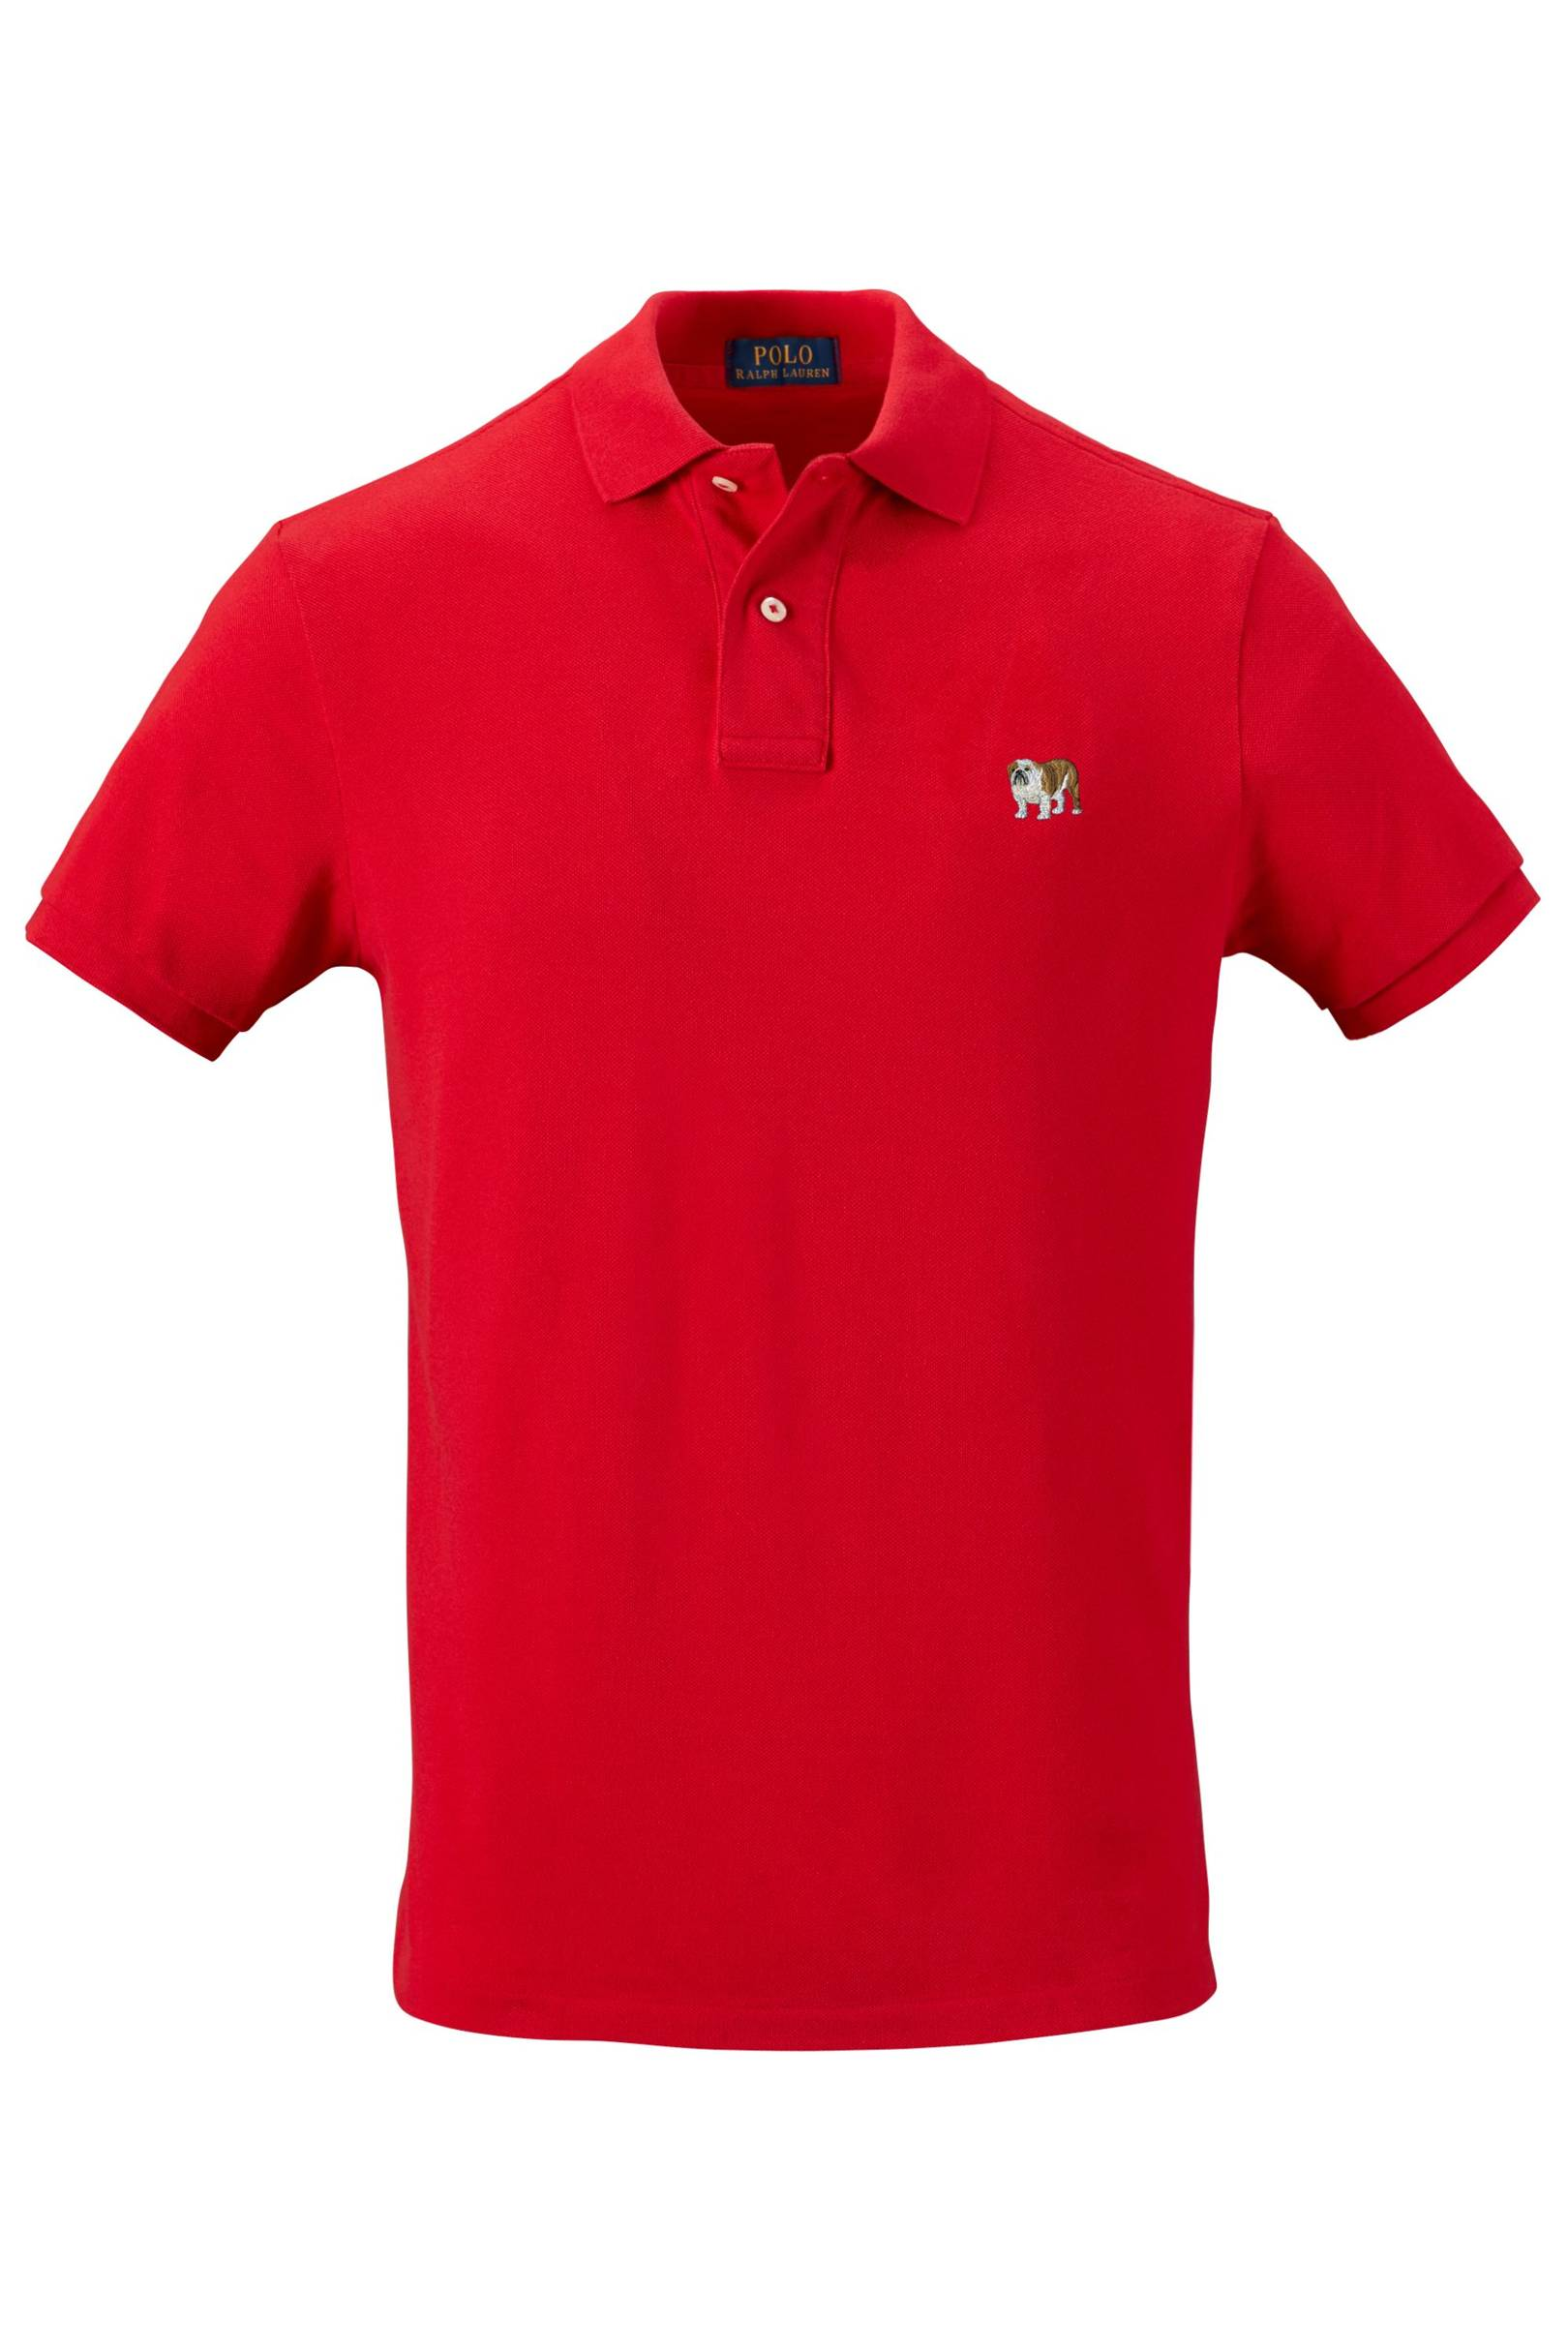 Create A Style That S All Your Own With The Ralph Lauren Polo Custom